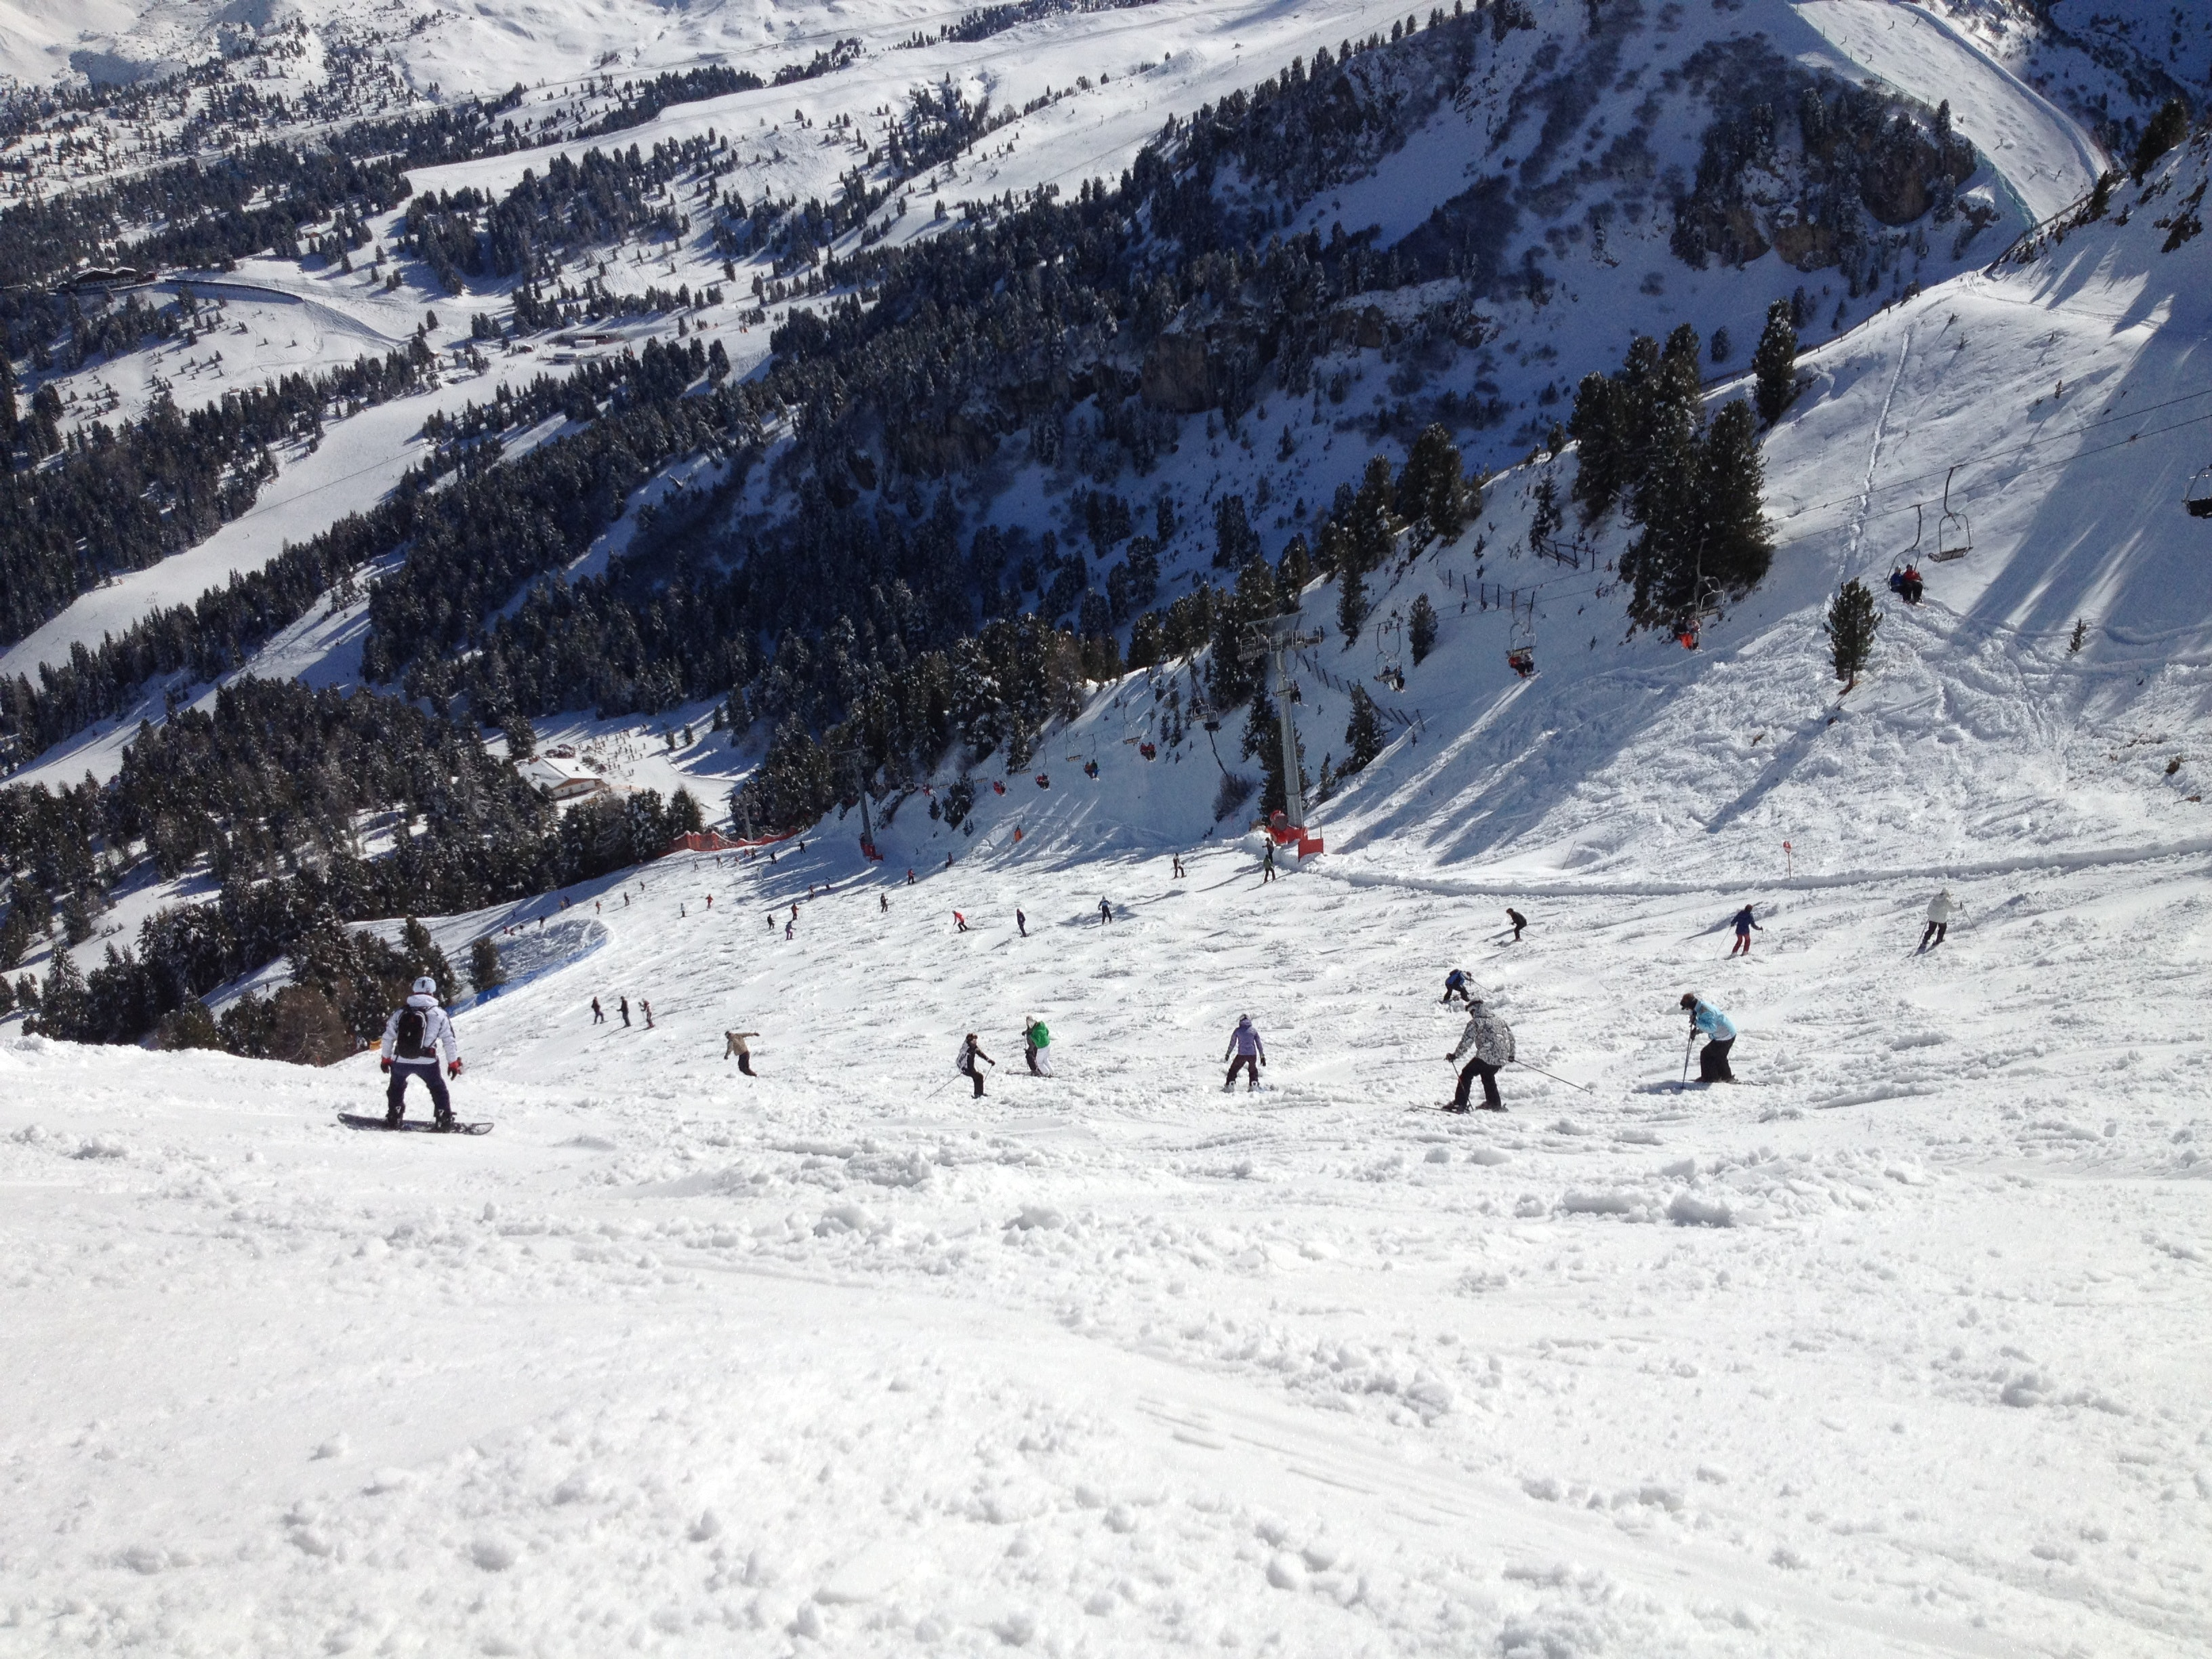 Person riding on snowboard on the snow during daytime photo